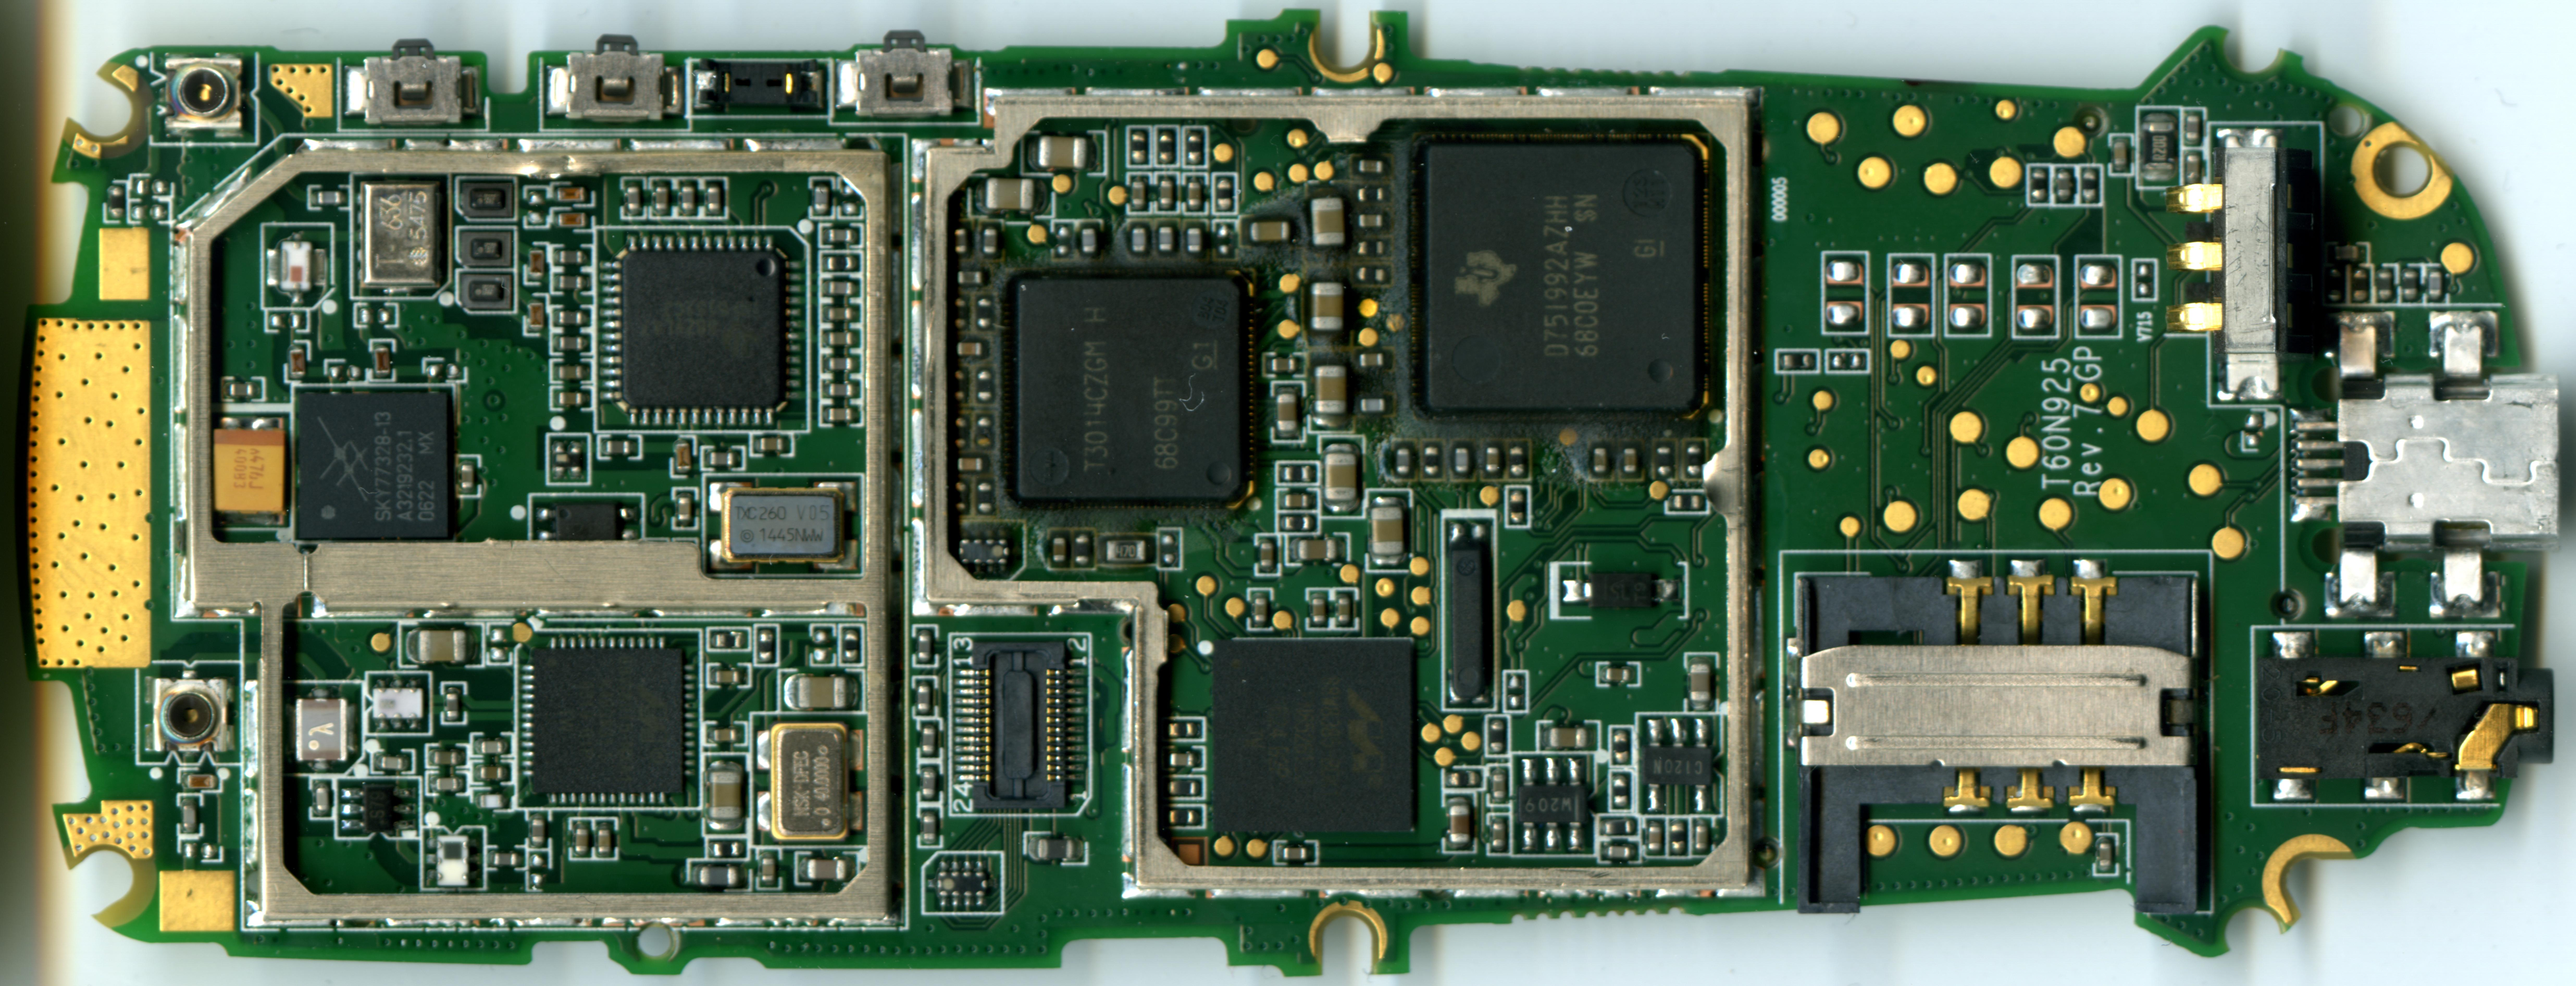 Version 20 History Pirellidpl10 Osmocombb How Does Panasonic Place Tiny Components On A Little Circuit Board Http Steve Mde Pictures Dpl10 Back